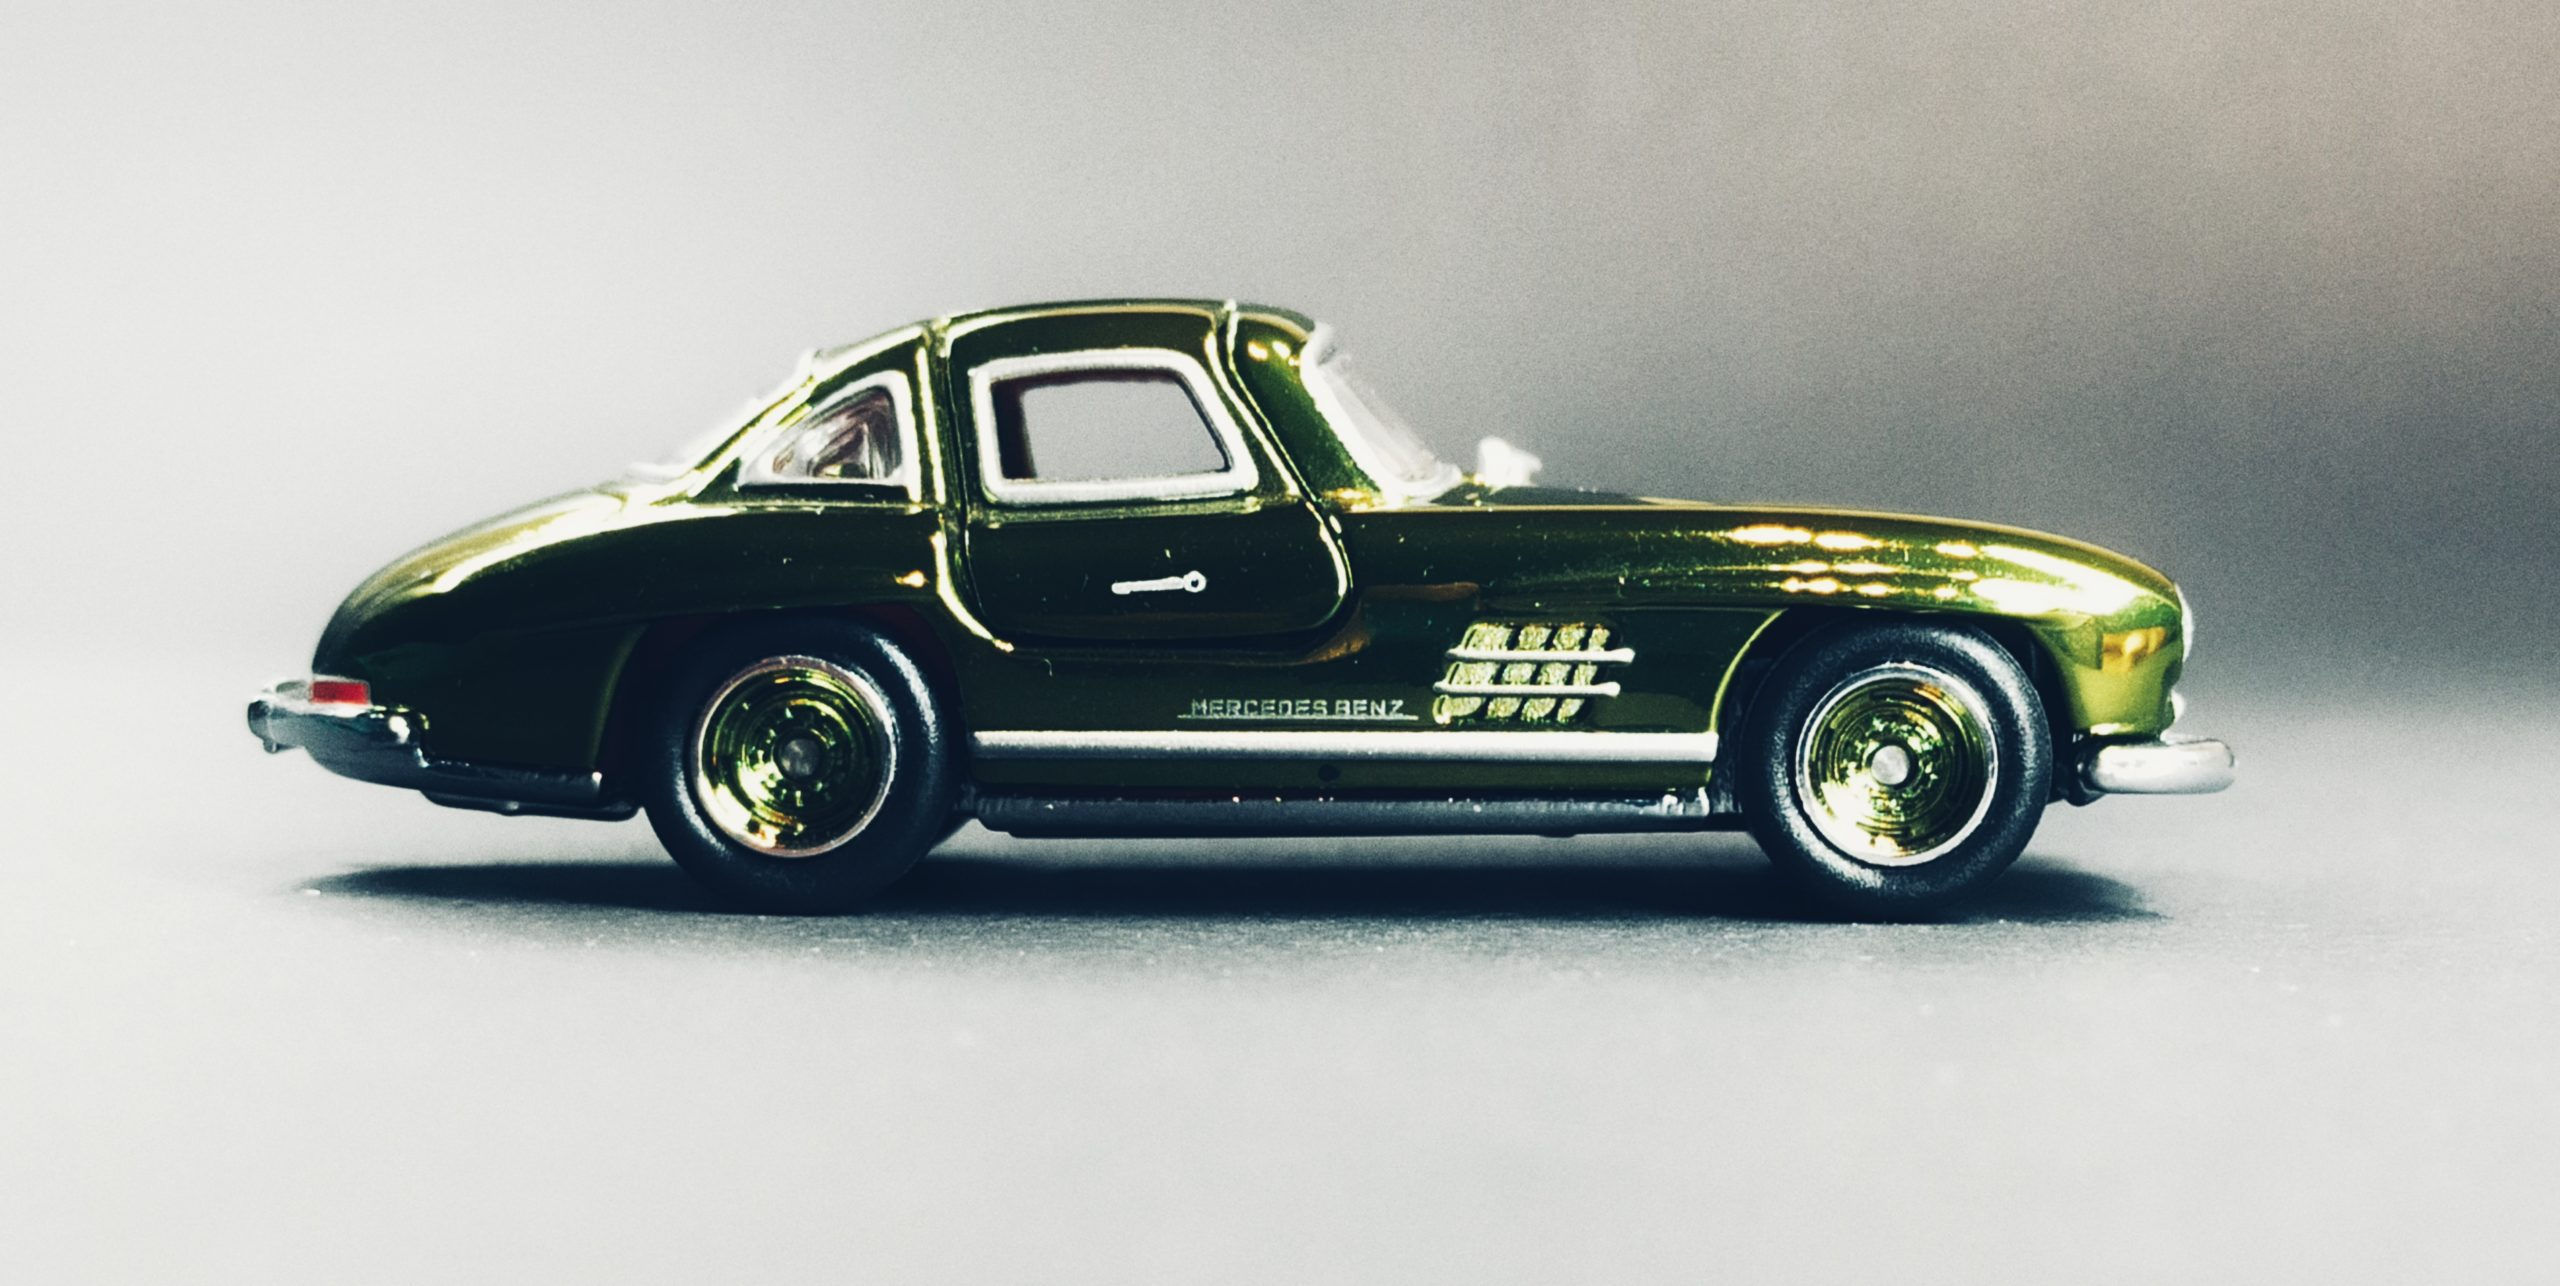 Hot Wheels '55 Mercedes-Benz 300 SL (GDF83) 2019 RLC Exclusive (1 of 12.500) spectraflame green side